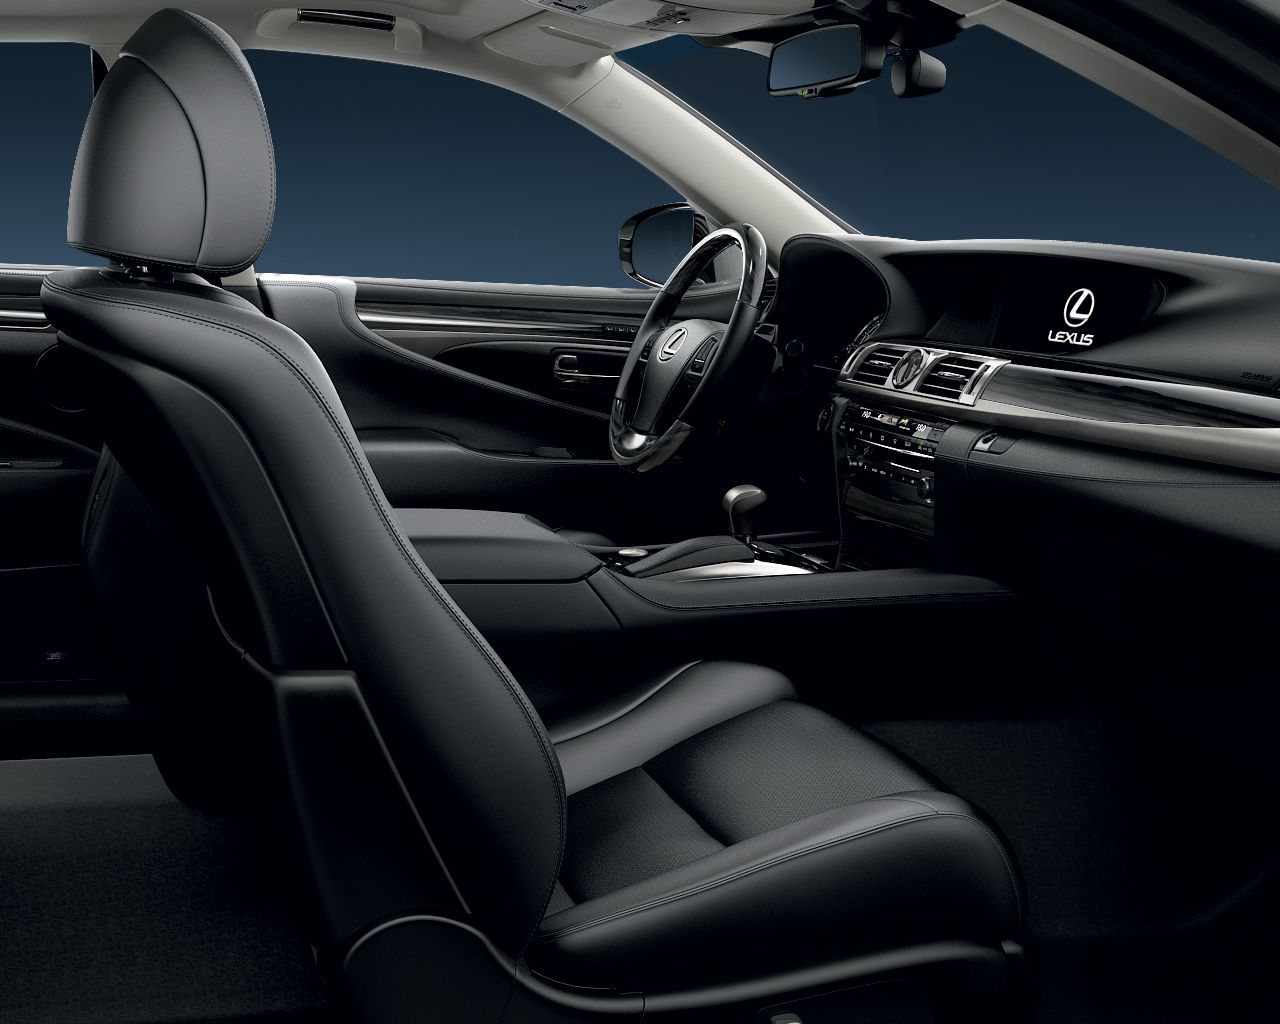 Inside, the new LS offers unmatched refinement. For ease